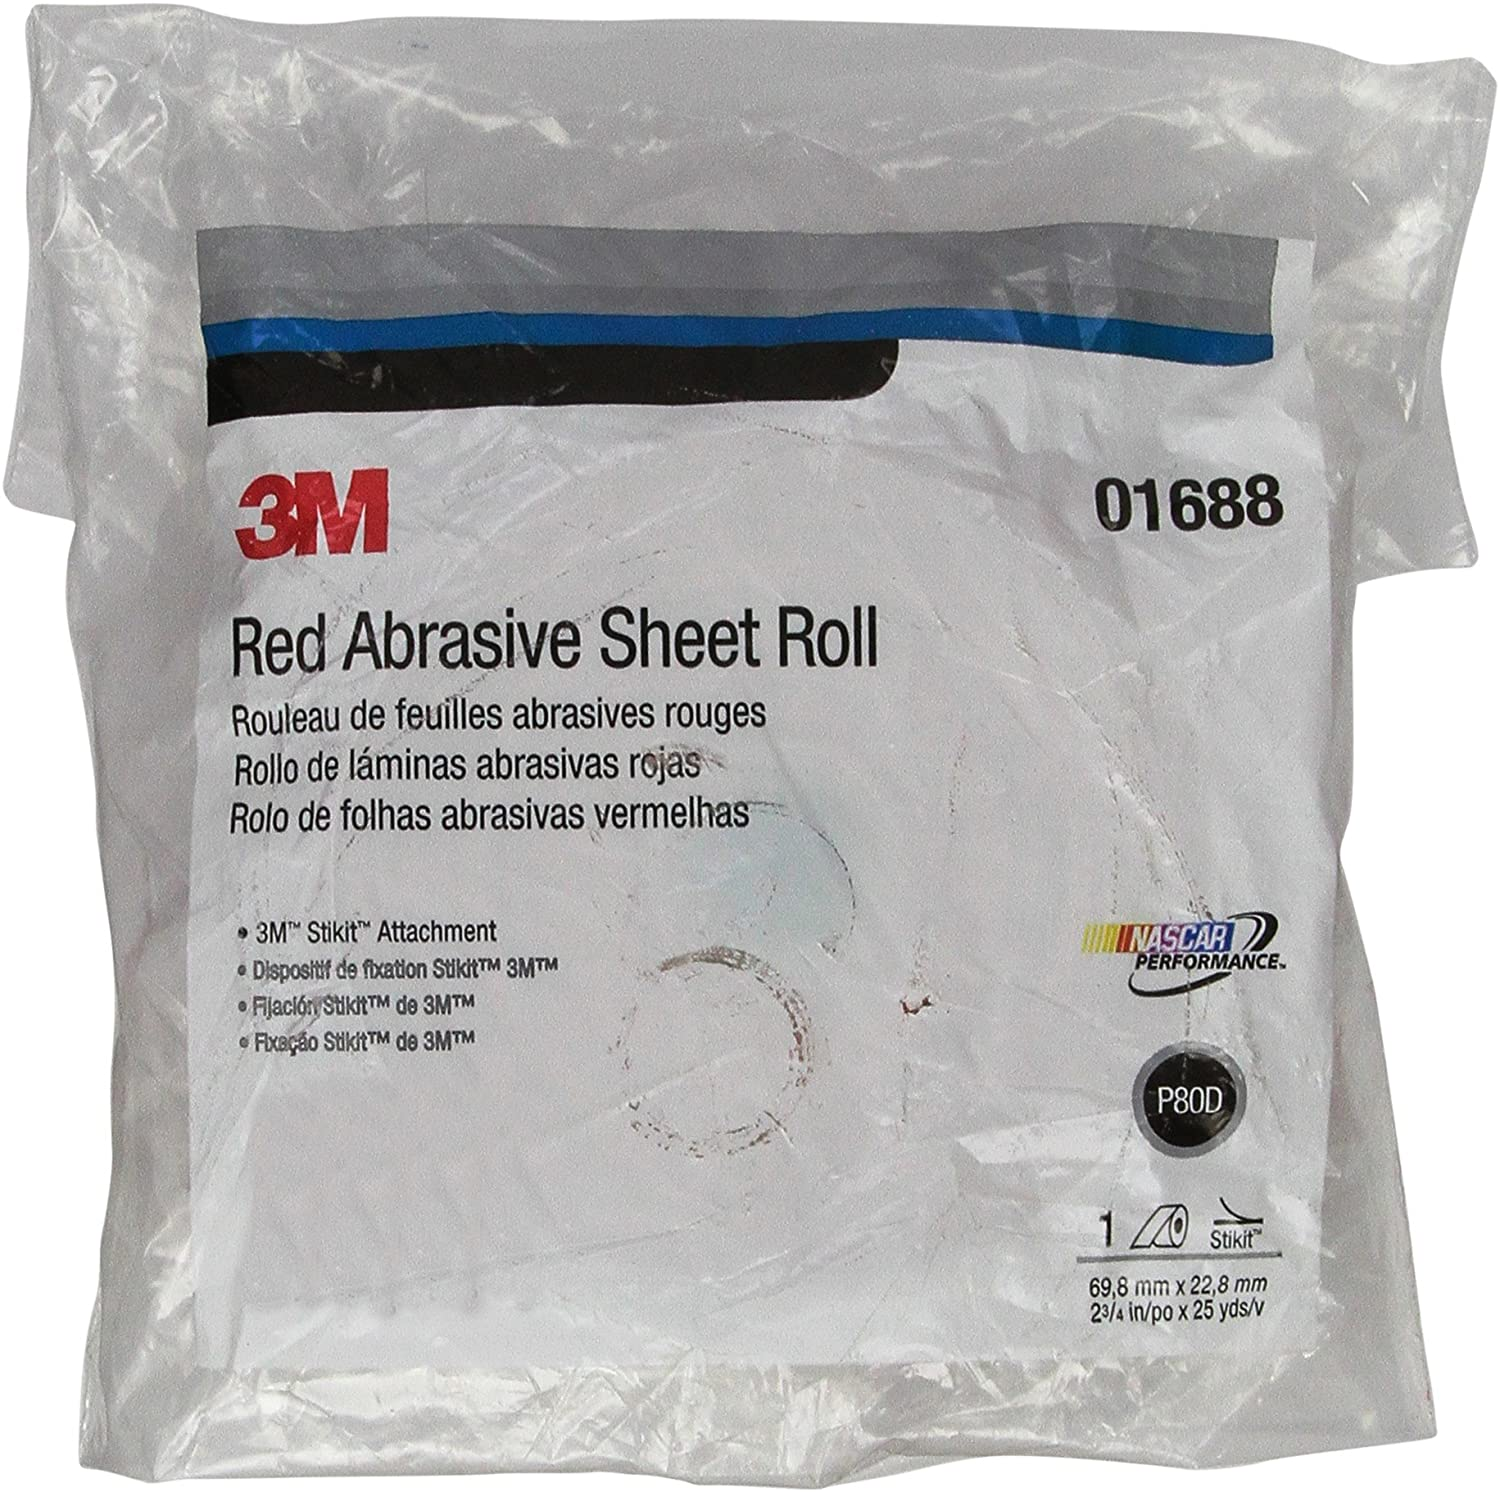 3M Red Abrasive Stikit Sheet Roll, 01688, P80, 2-3/4 in x 25 yd, D weight